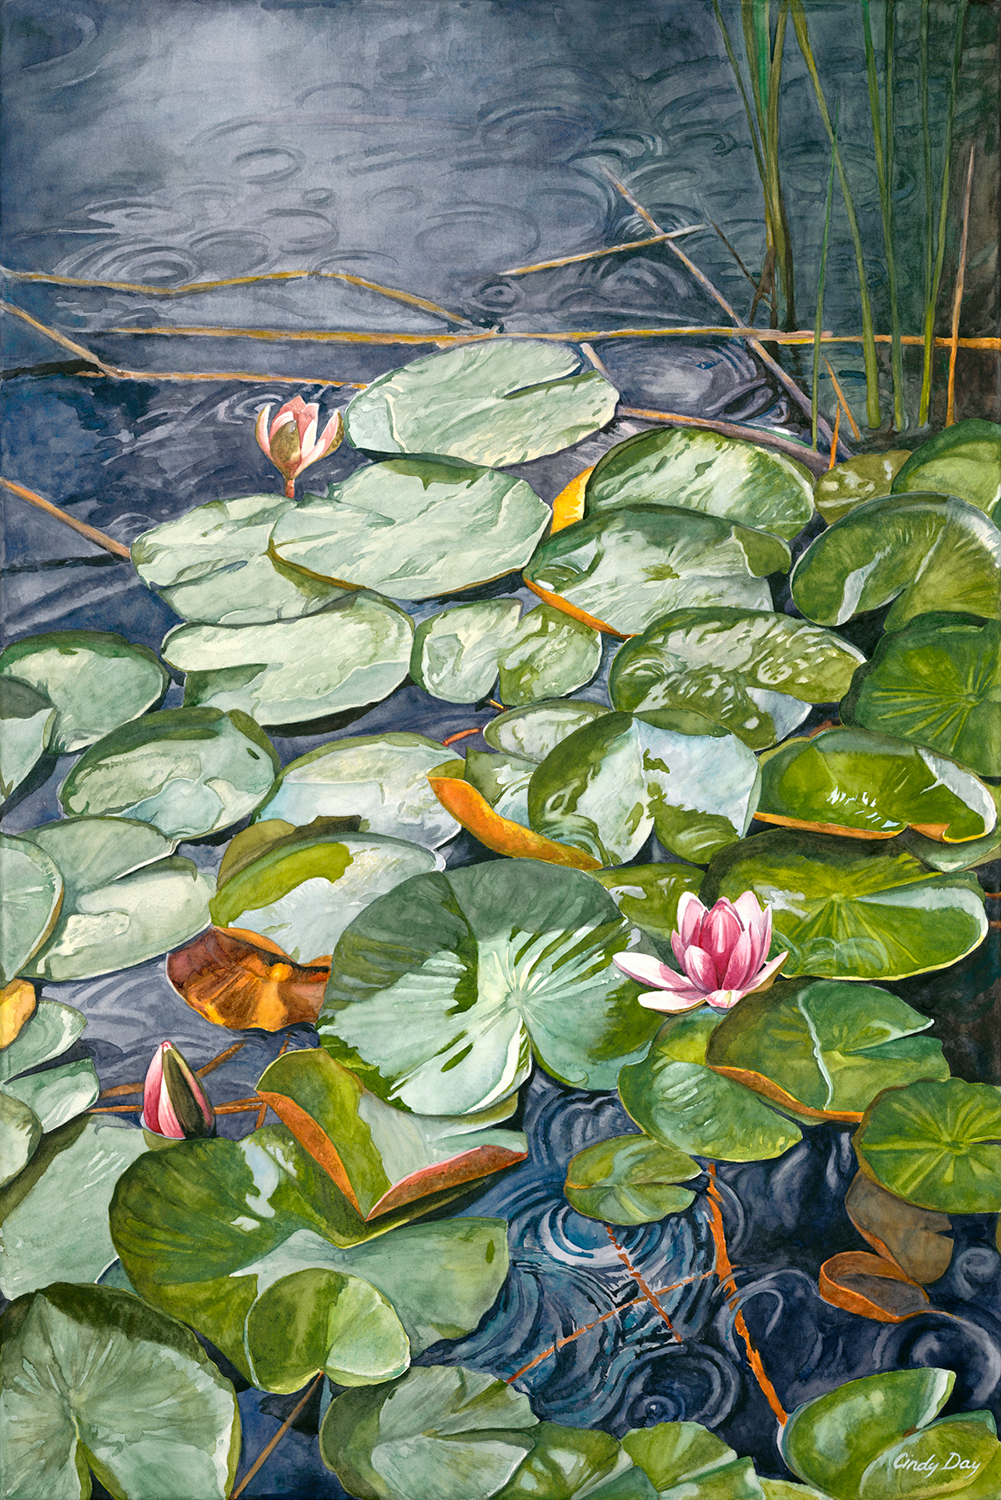 Water Lilies in the Rain